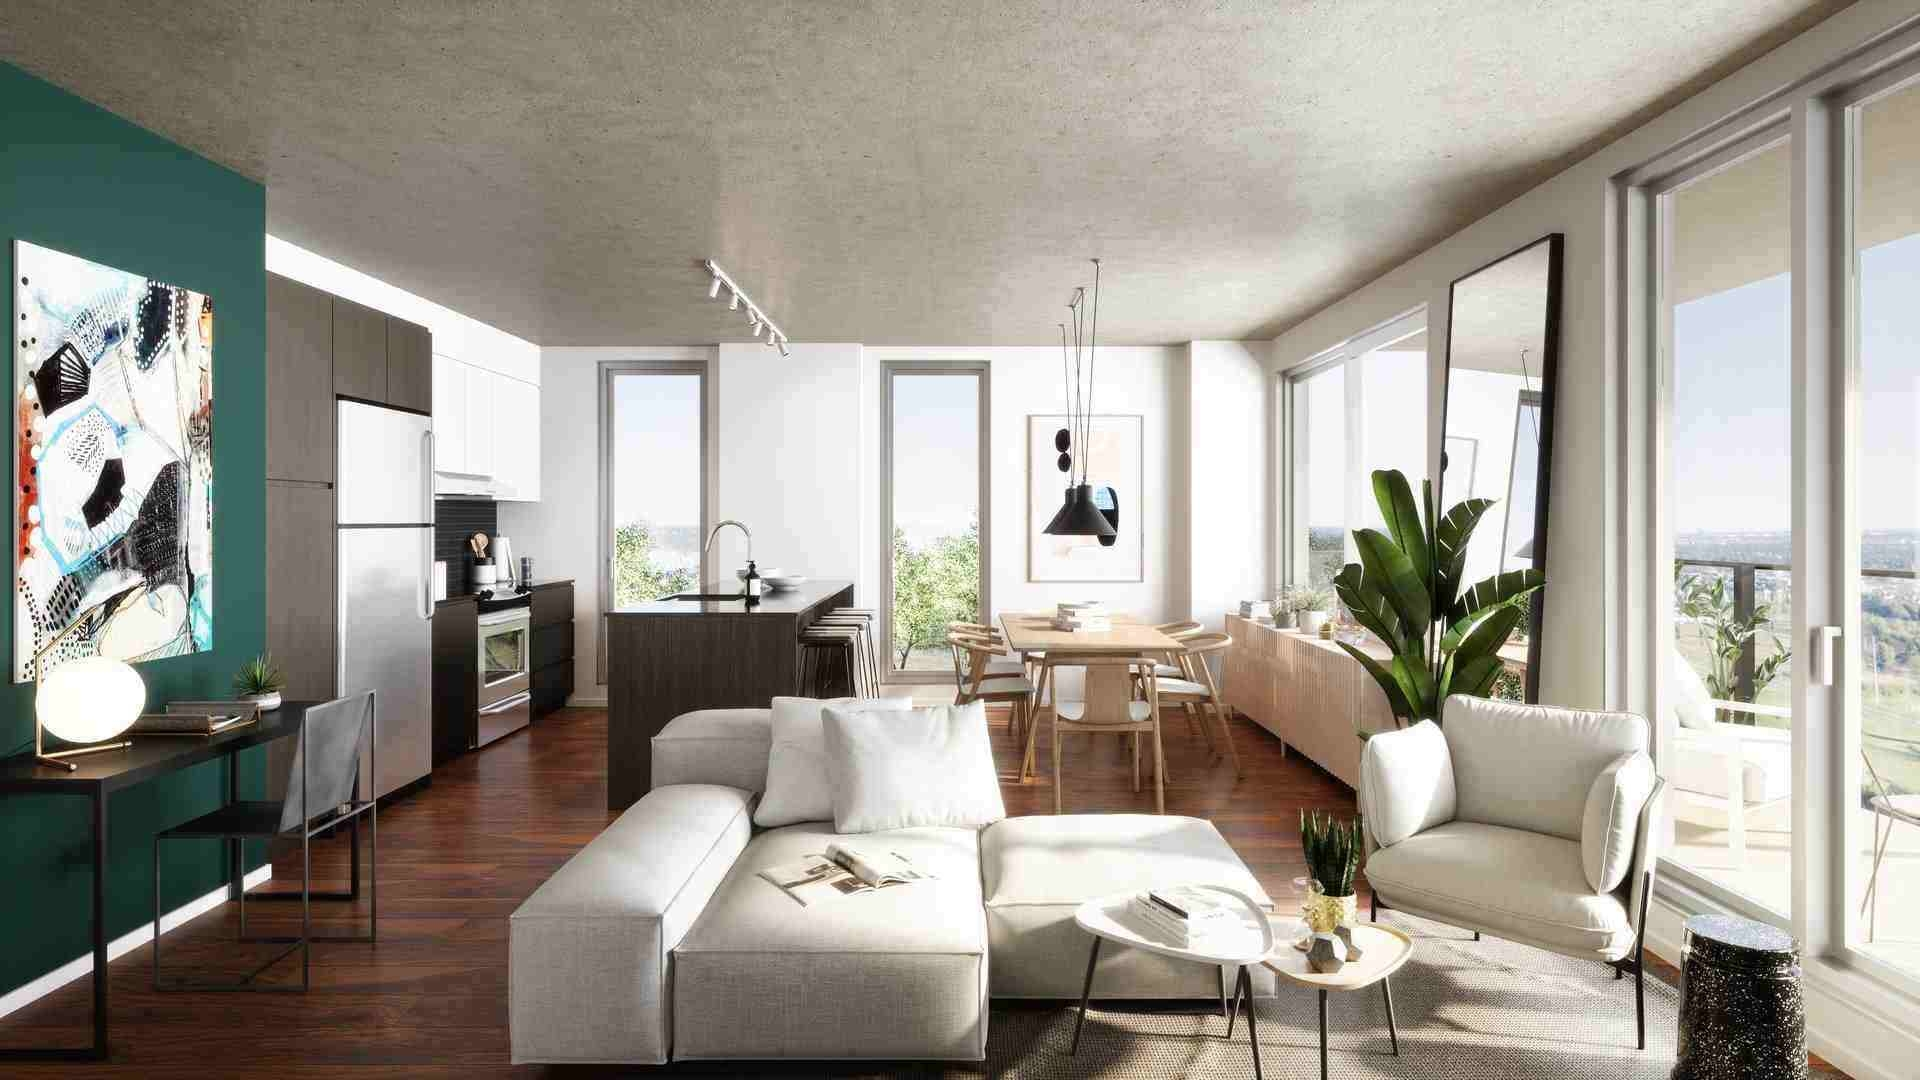 Grand 3 ½ à louer à Brossard par Devimco Appartements